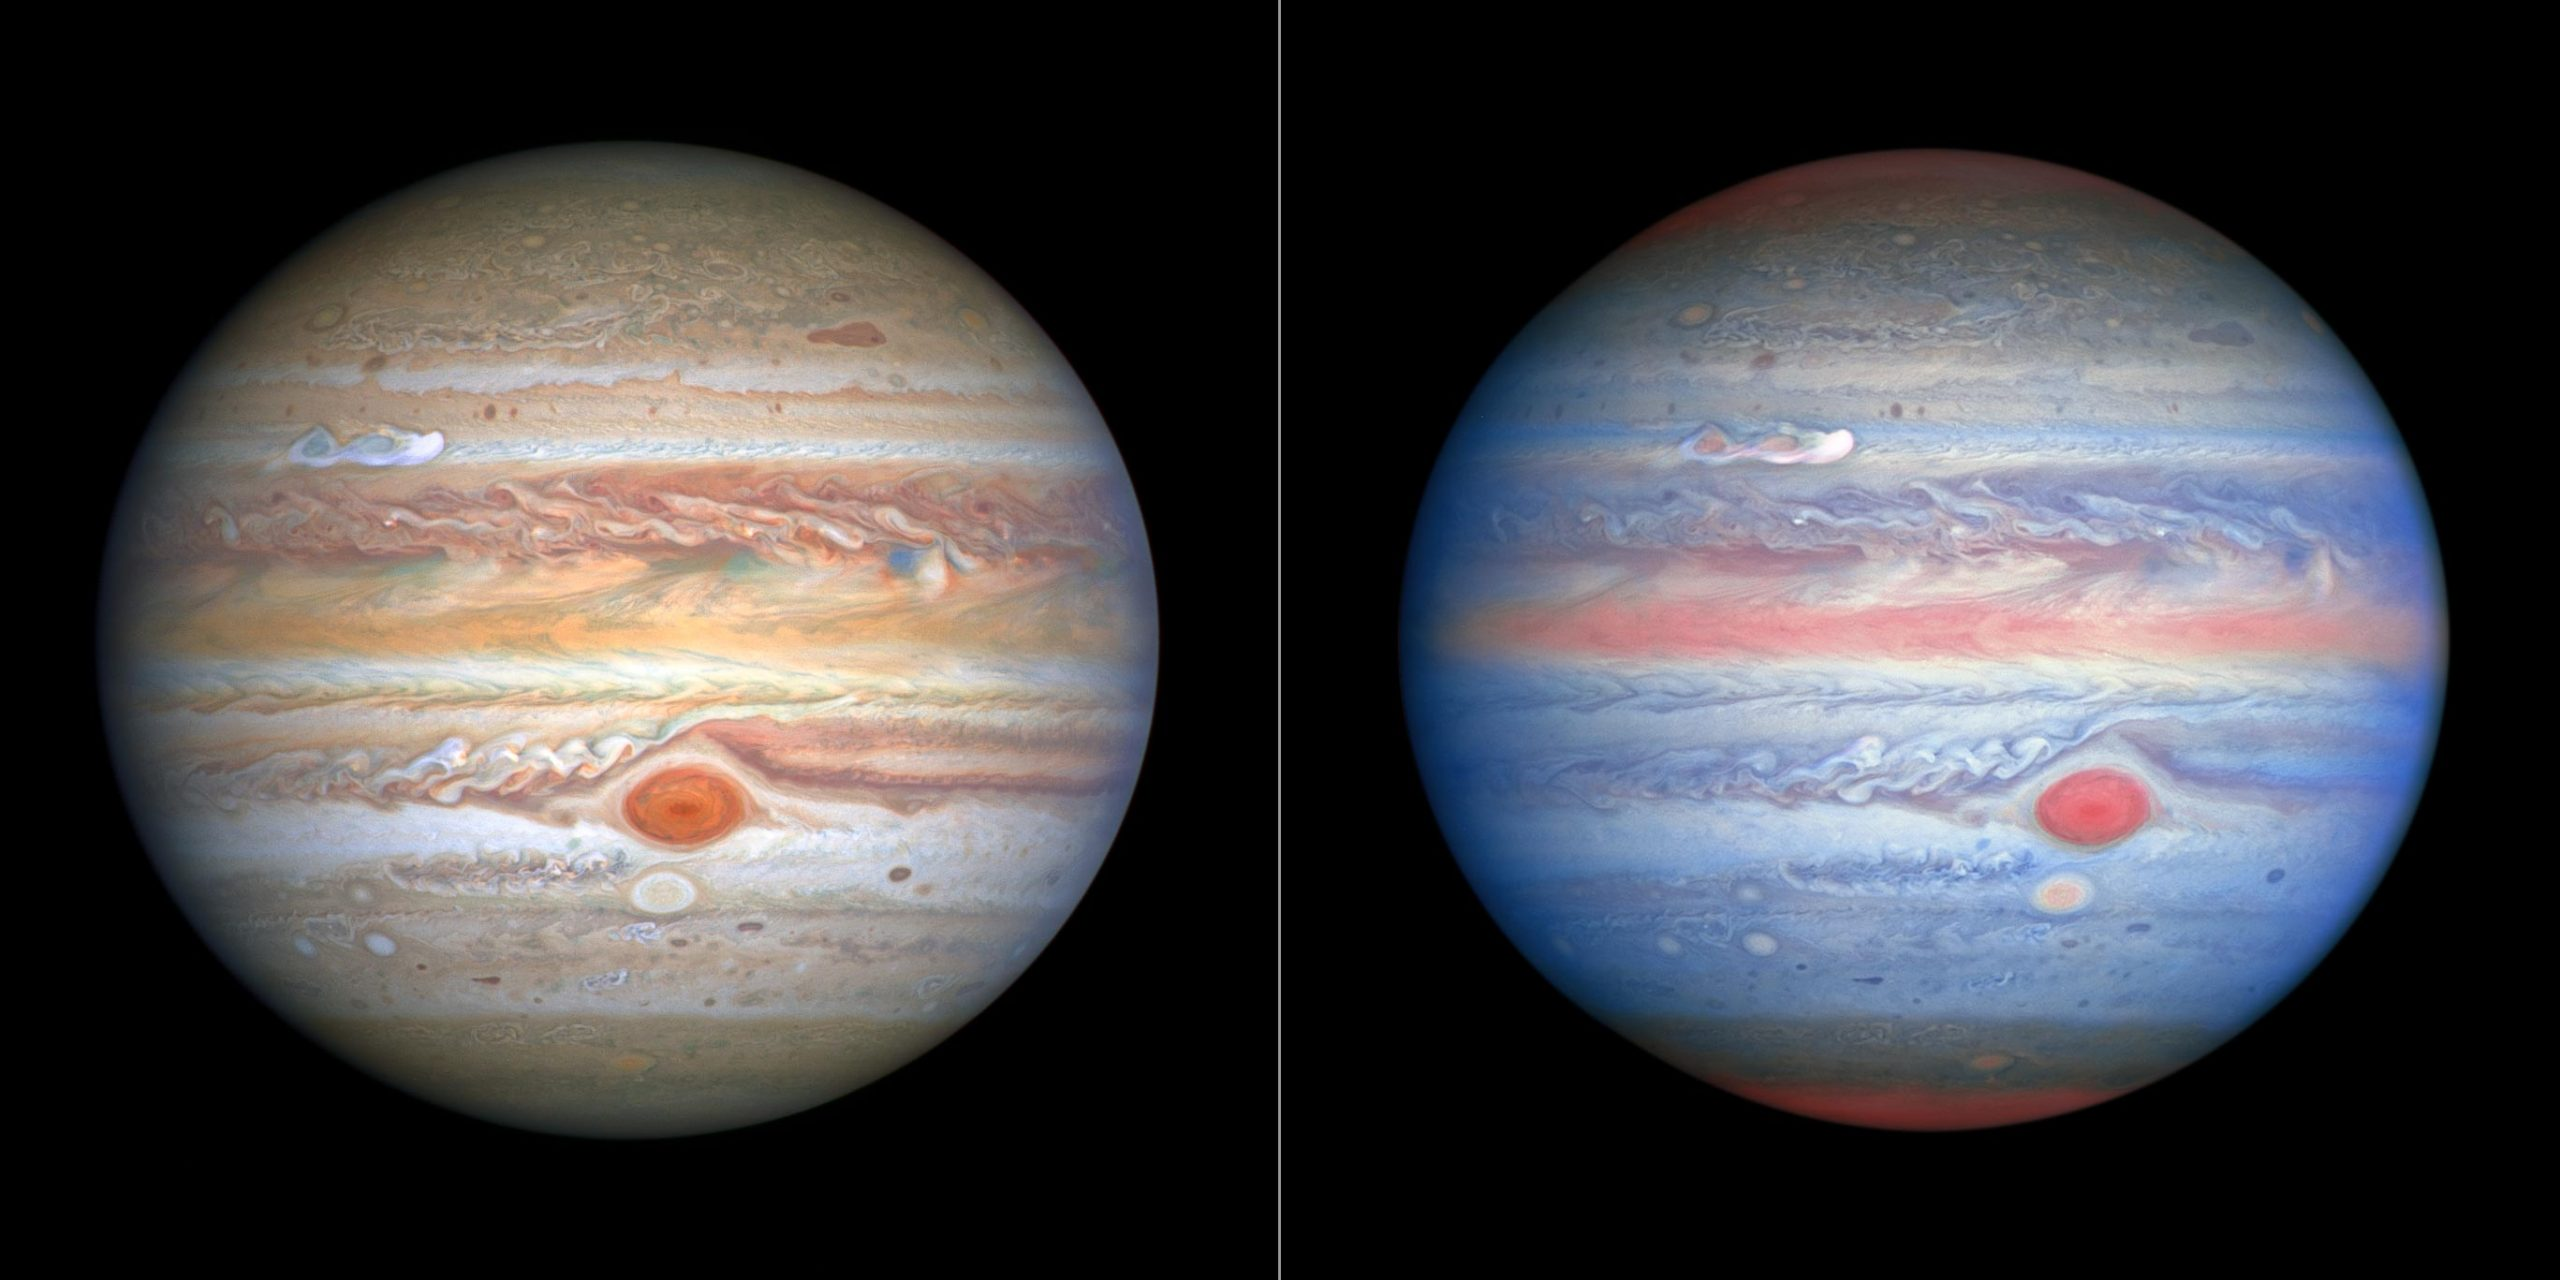 Hubble Telescope captures new images of Jupiter